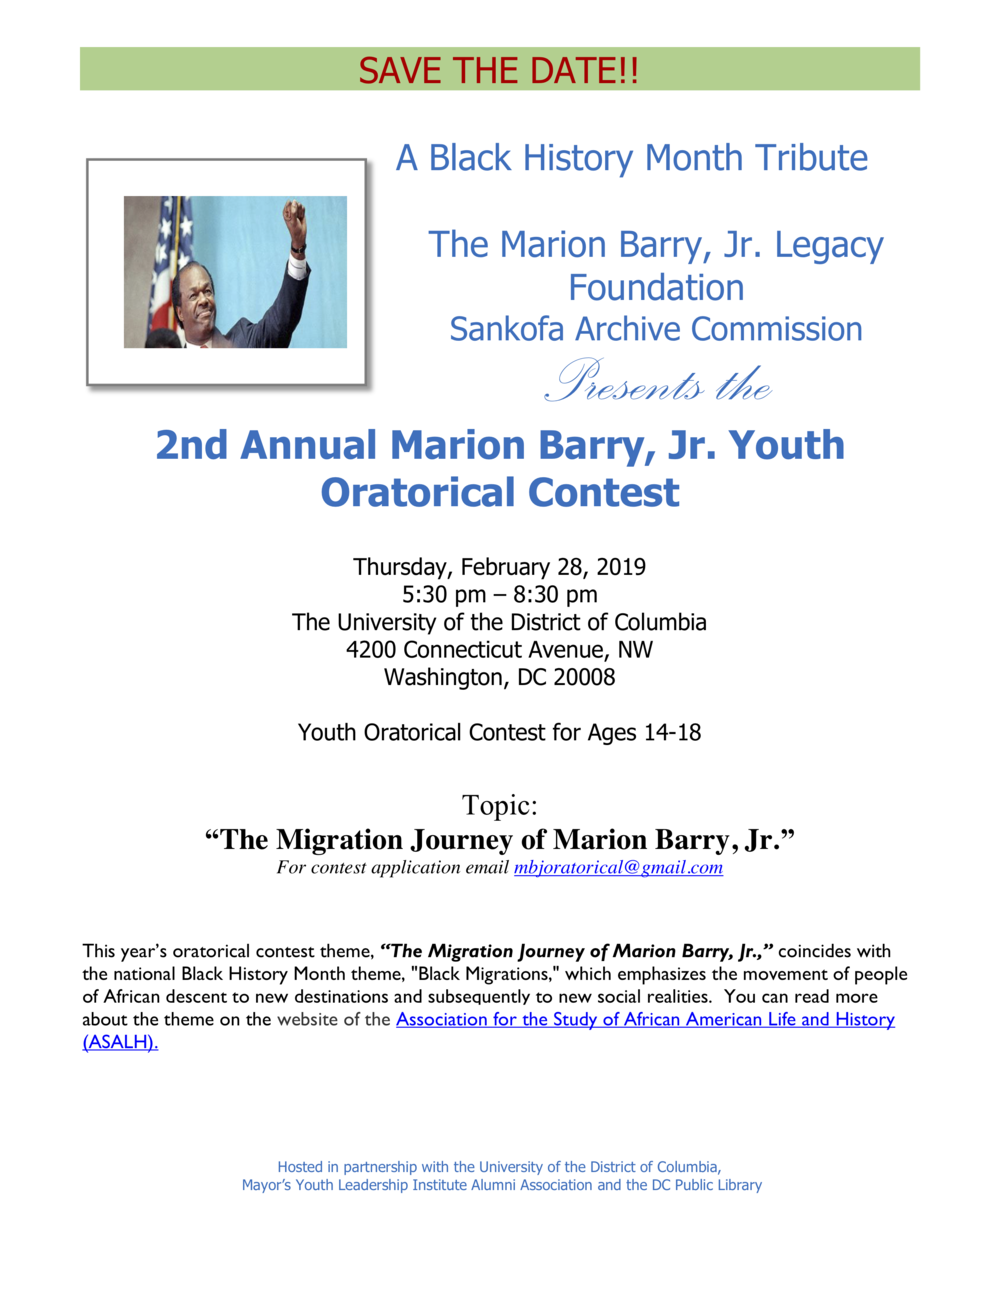 Save the Date flier - MBJr. Youth Oratorical Contest - A Black History Month Tribute 2019.png